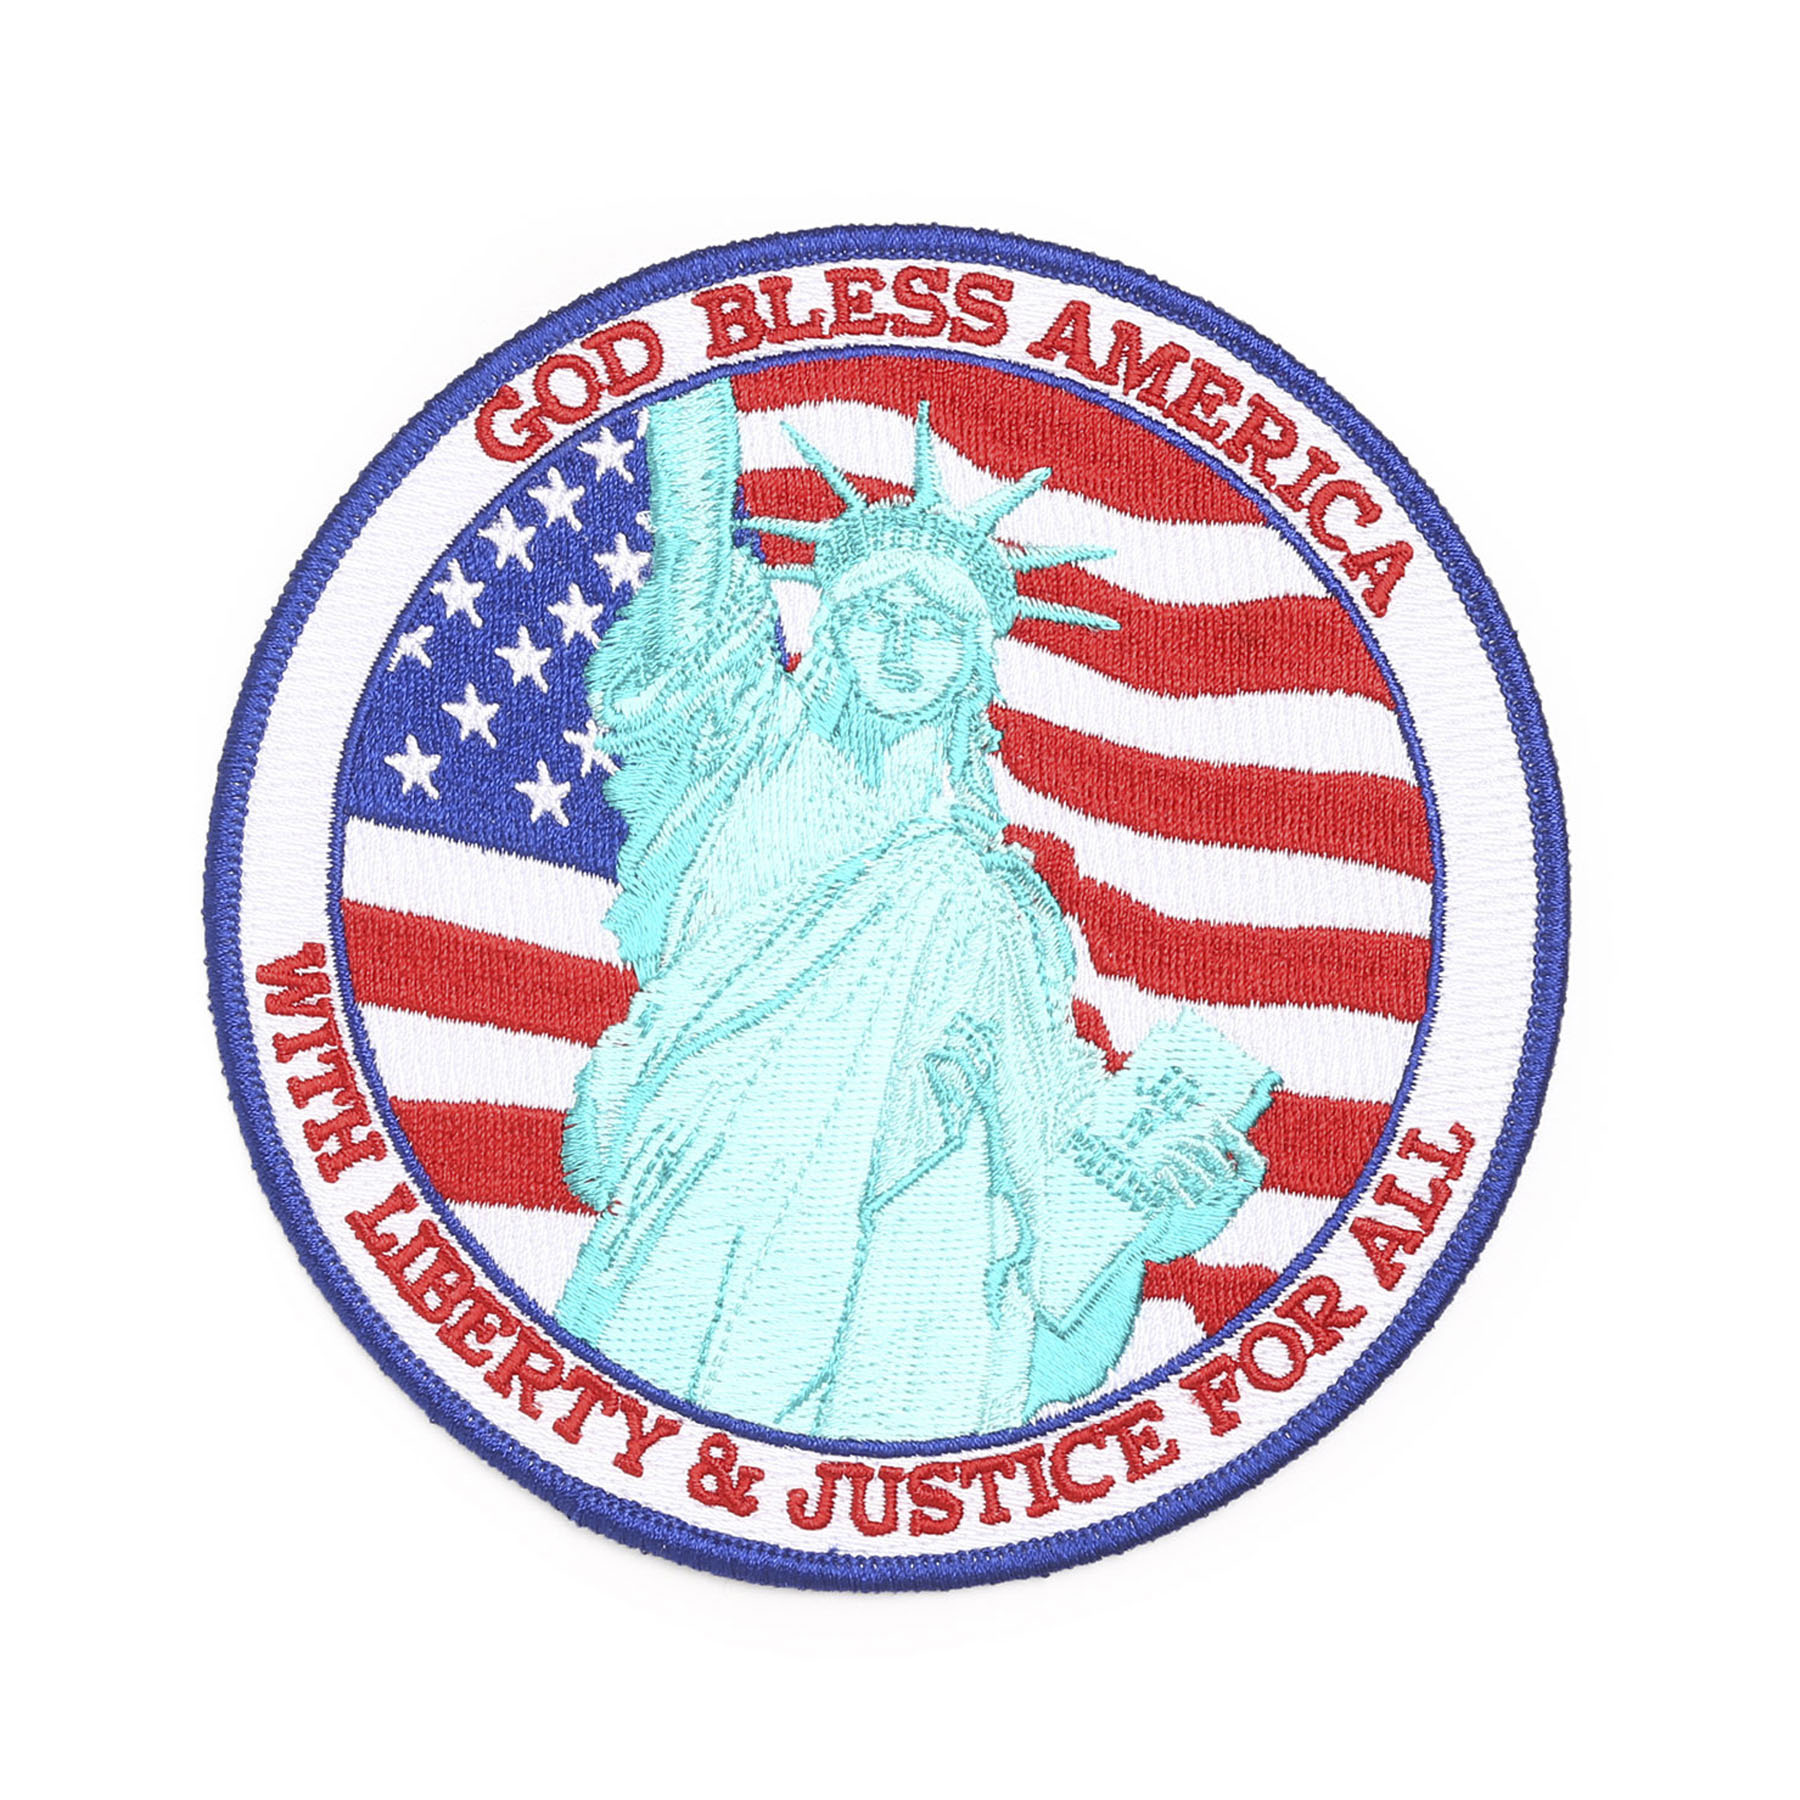 Hero's Pride Lady Liberty God Bless America Patch